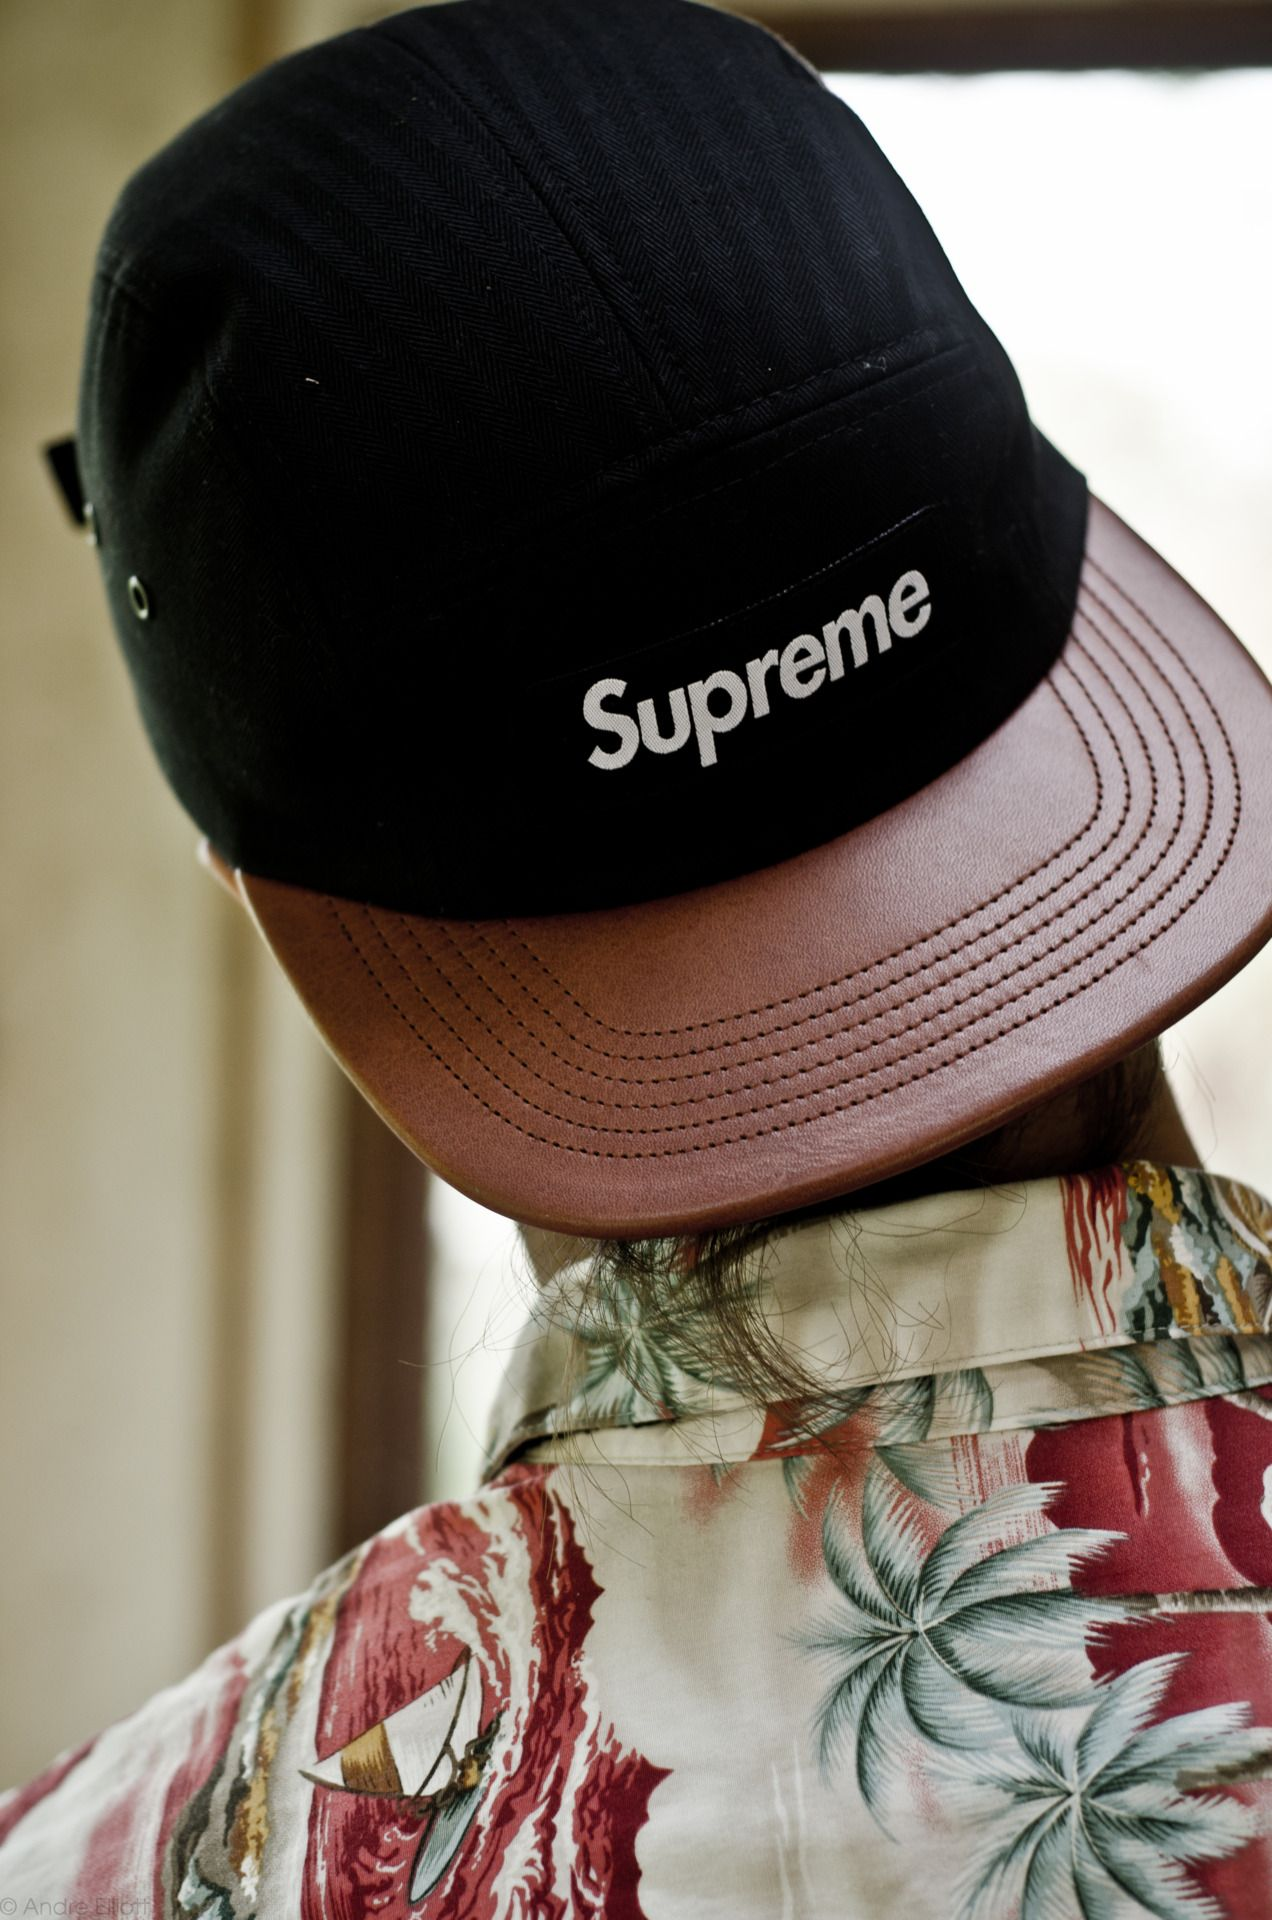 82909a94 SUPREME | T O P M A N | Supreme hat, Outfits with hats, Supreme clothing